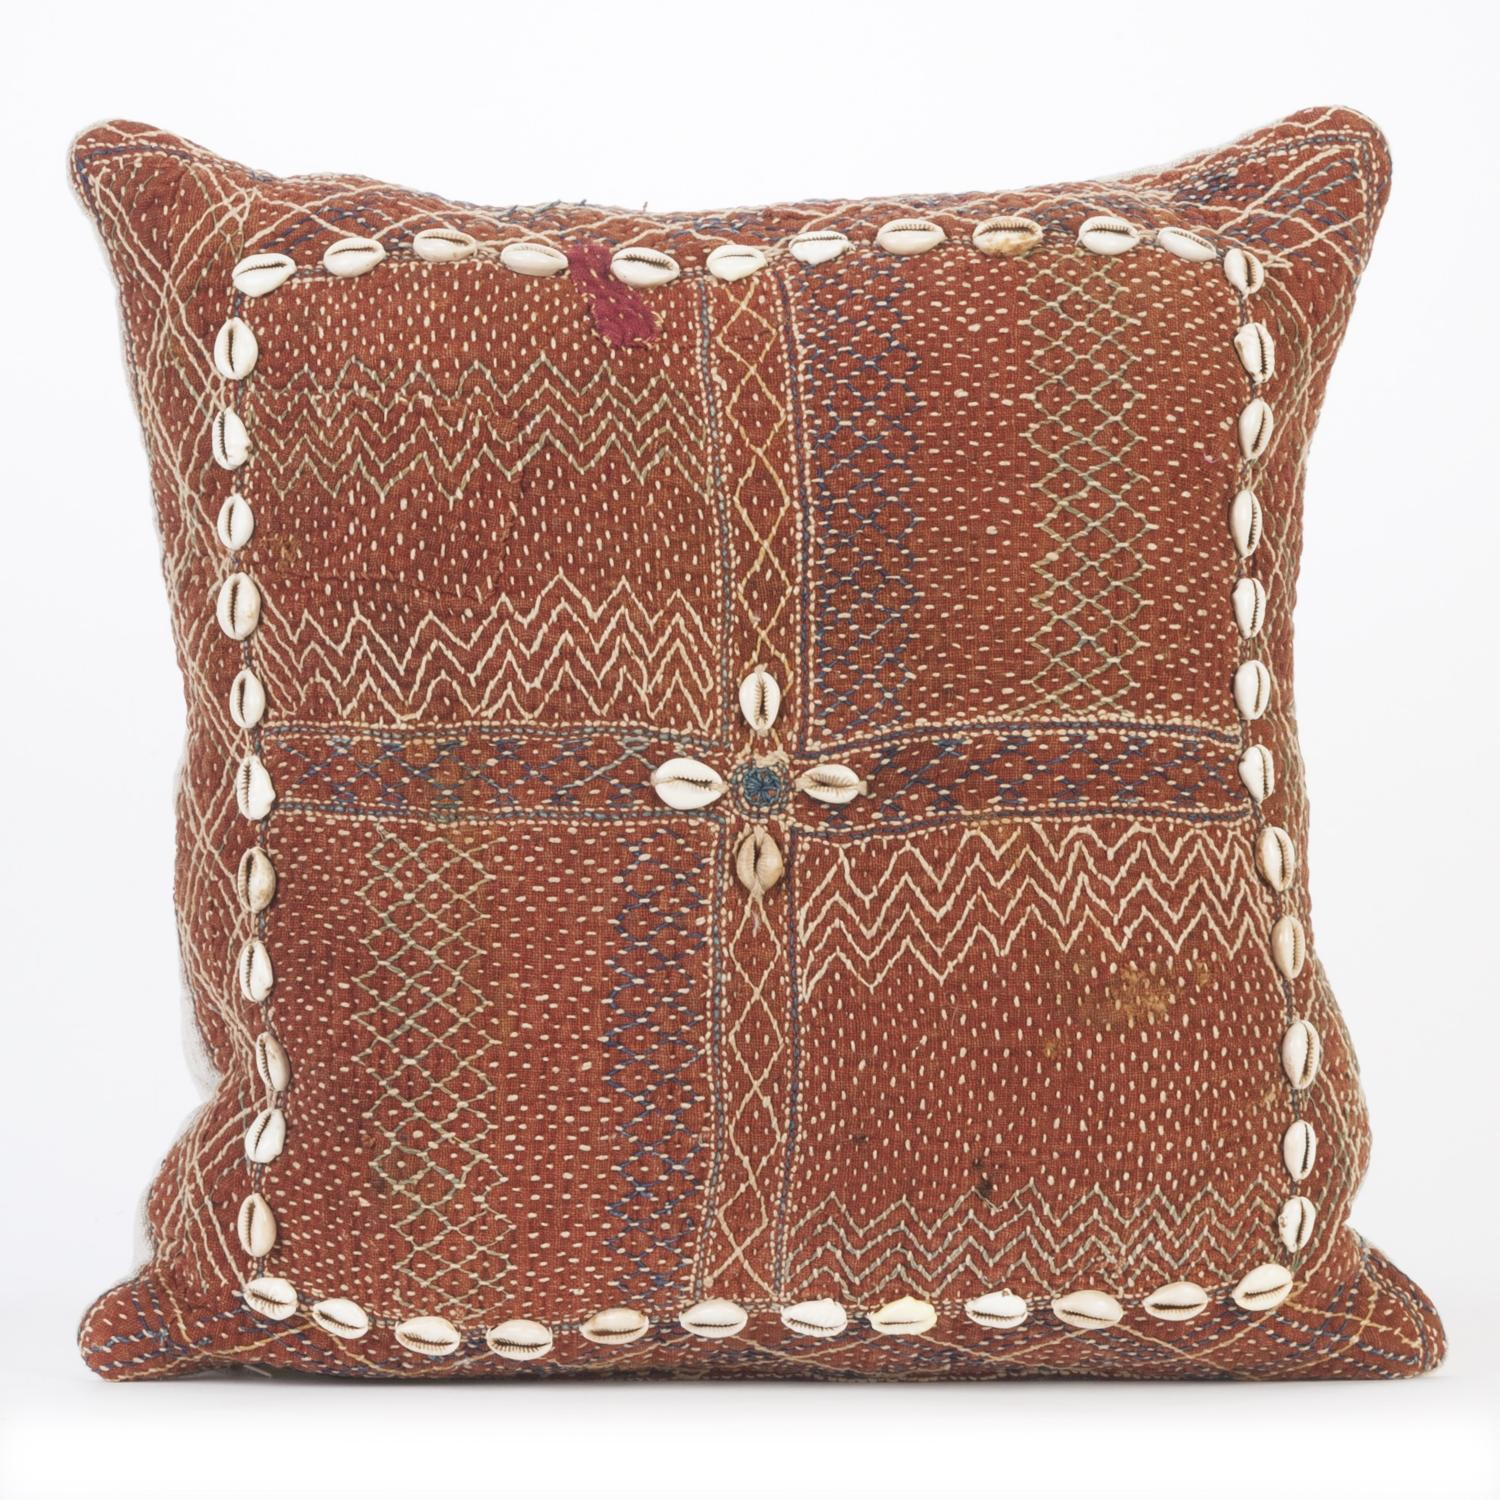 Vintage Banjara Cushion - Brown